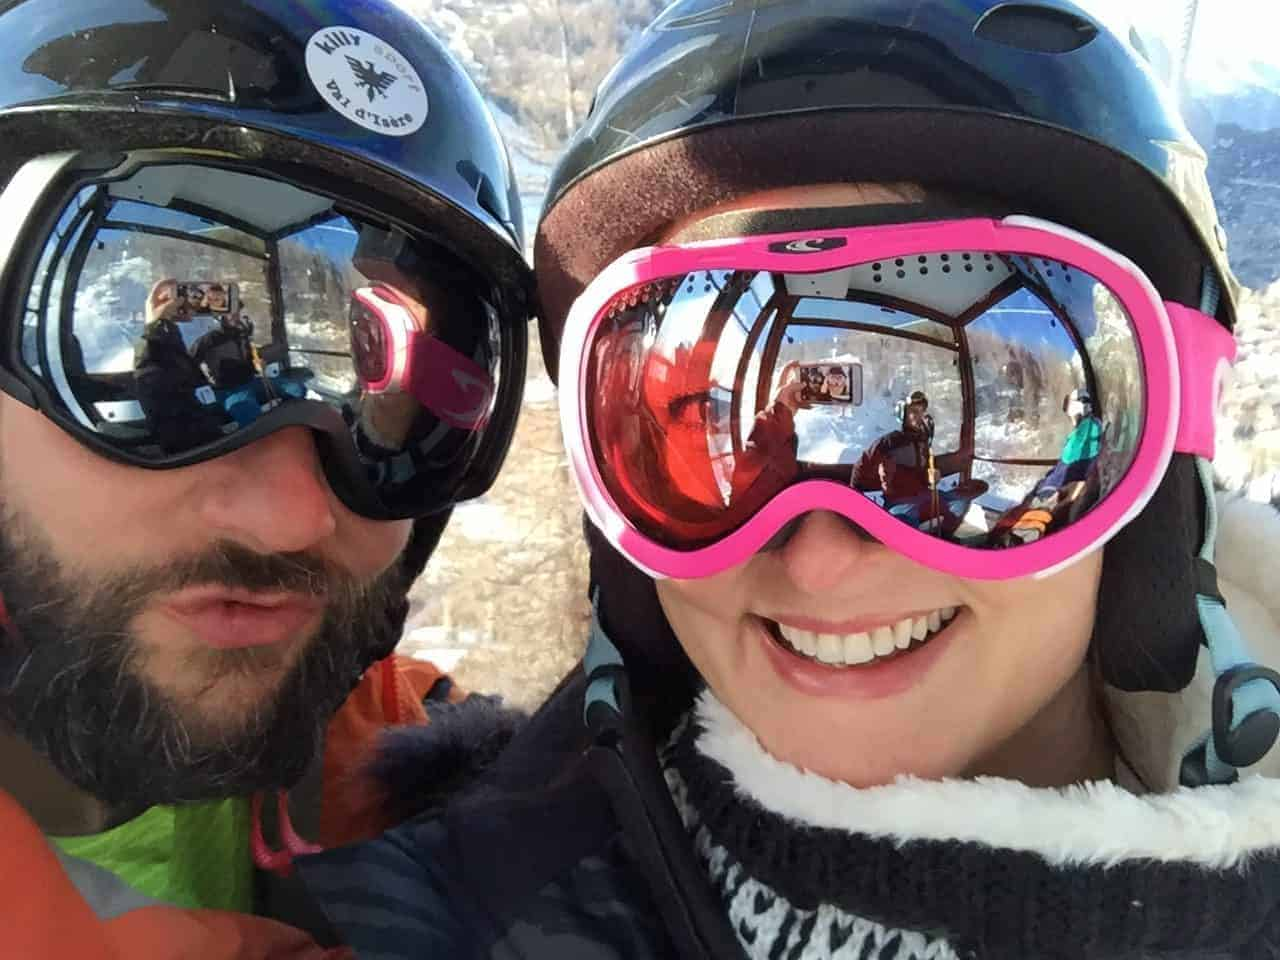 Couple on a ski holiday wearing ski goggles